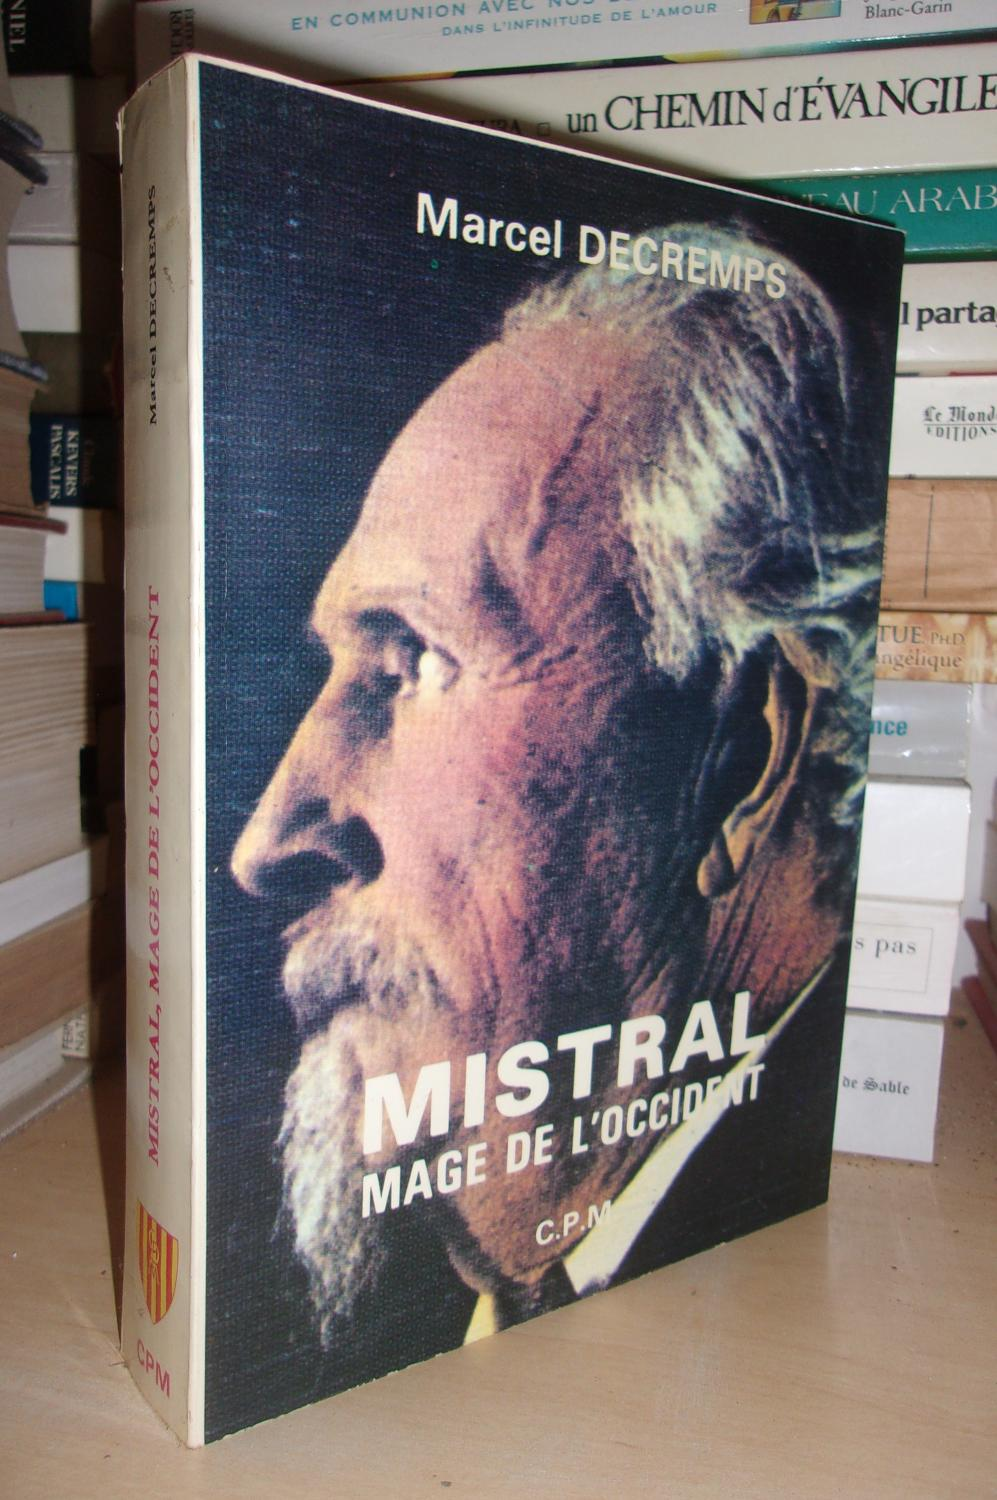 Mistral - Mage De l' Occident - Decremps Marcel